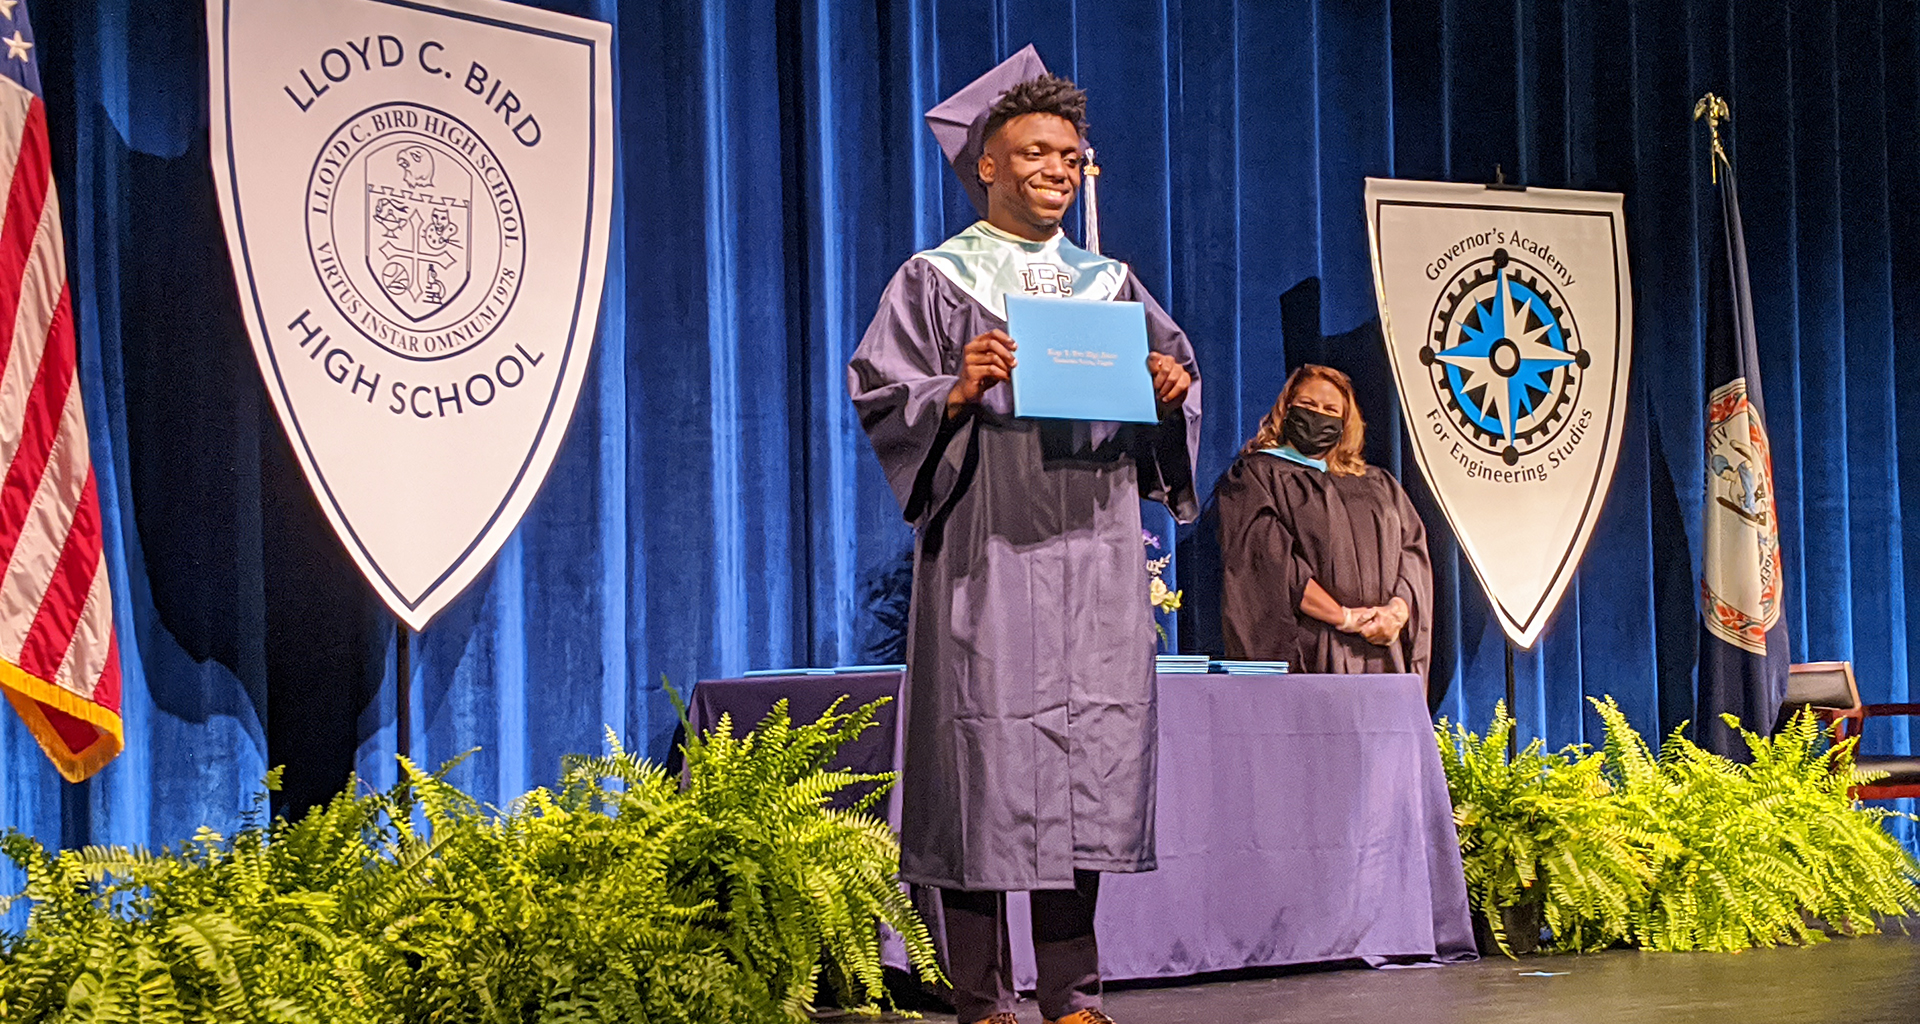 A male student on stage in cap and gown holding up his diploma with principal looking on in background.